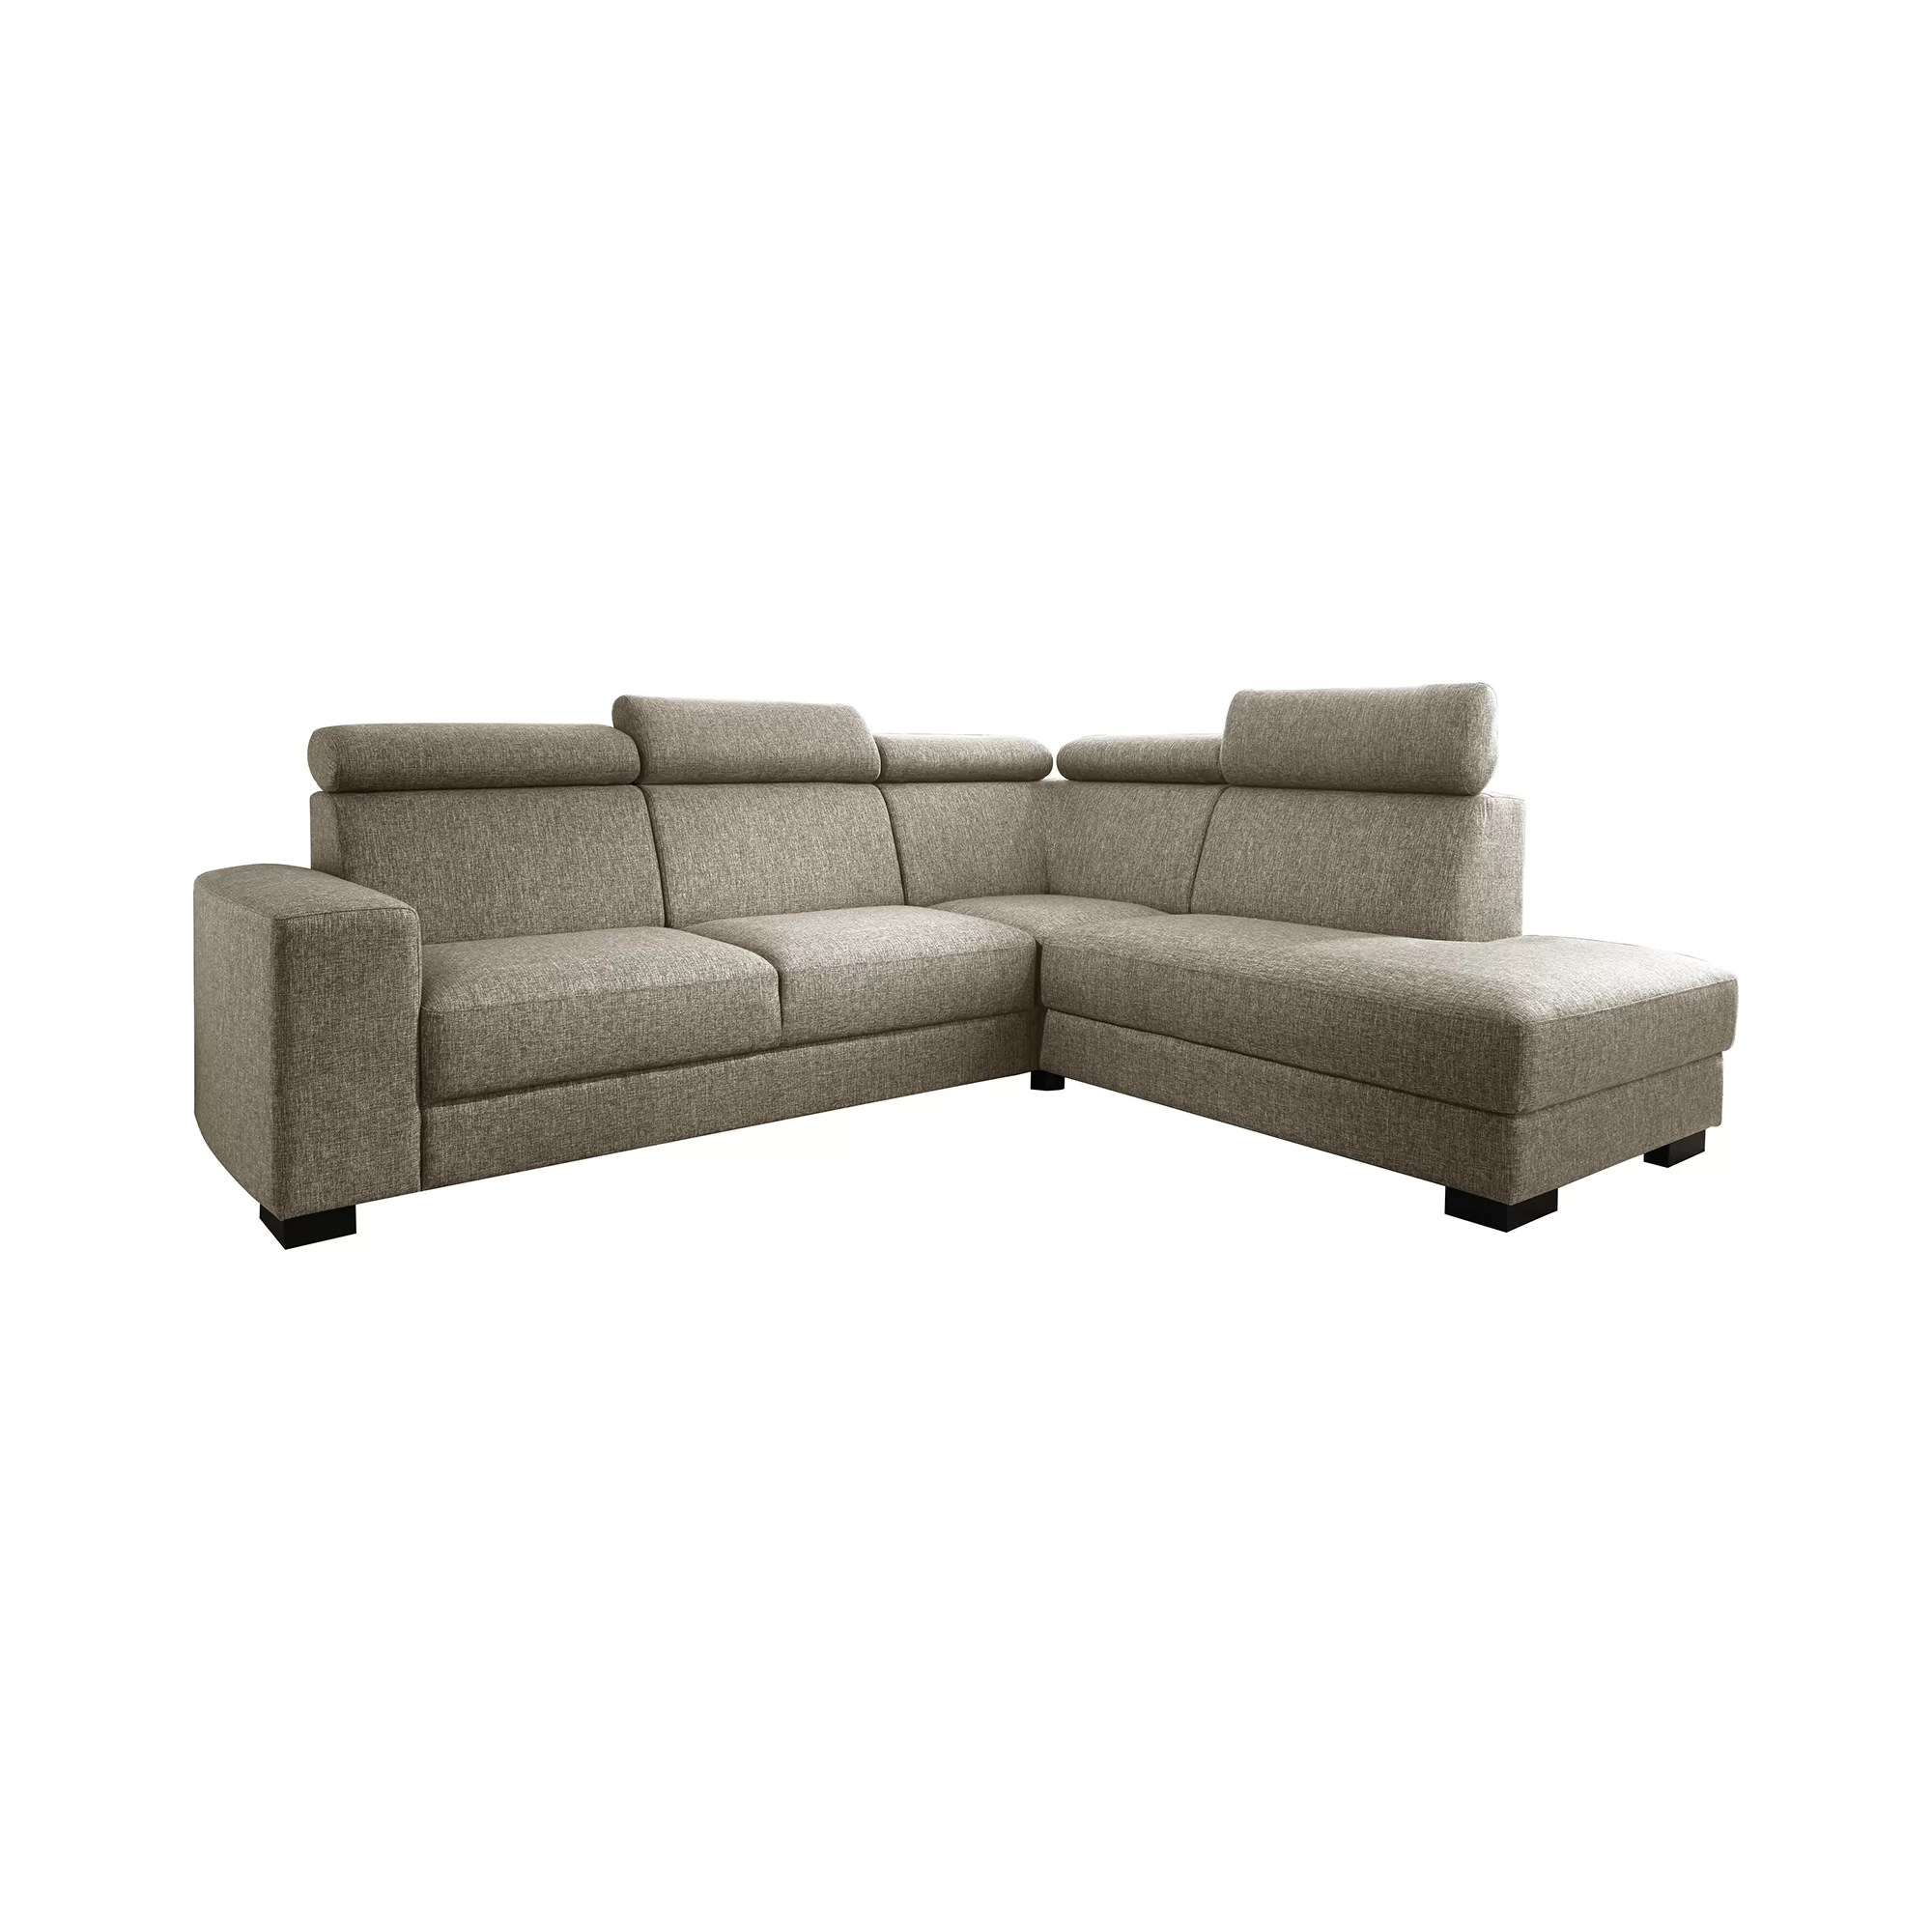 Ecksofa Mit Relaxfunktion Atlantic Home Collection Ecksofa Olaf Mit Relaxfunktion Wayfair De